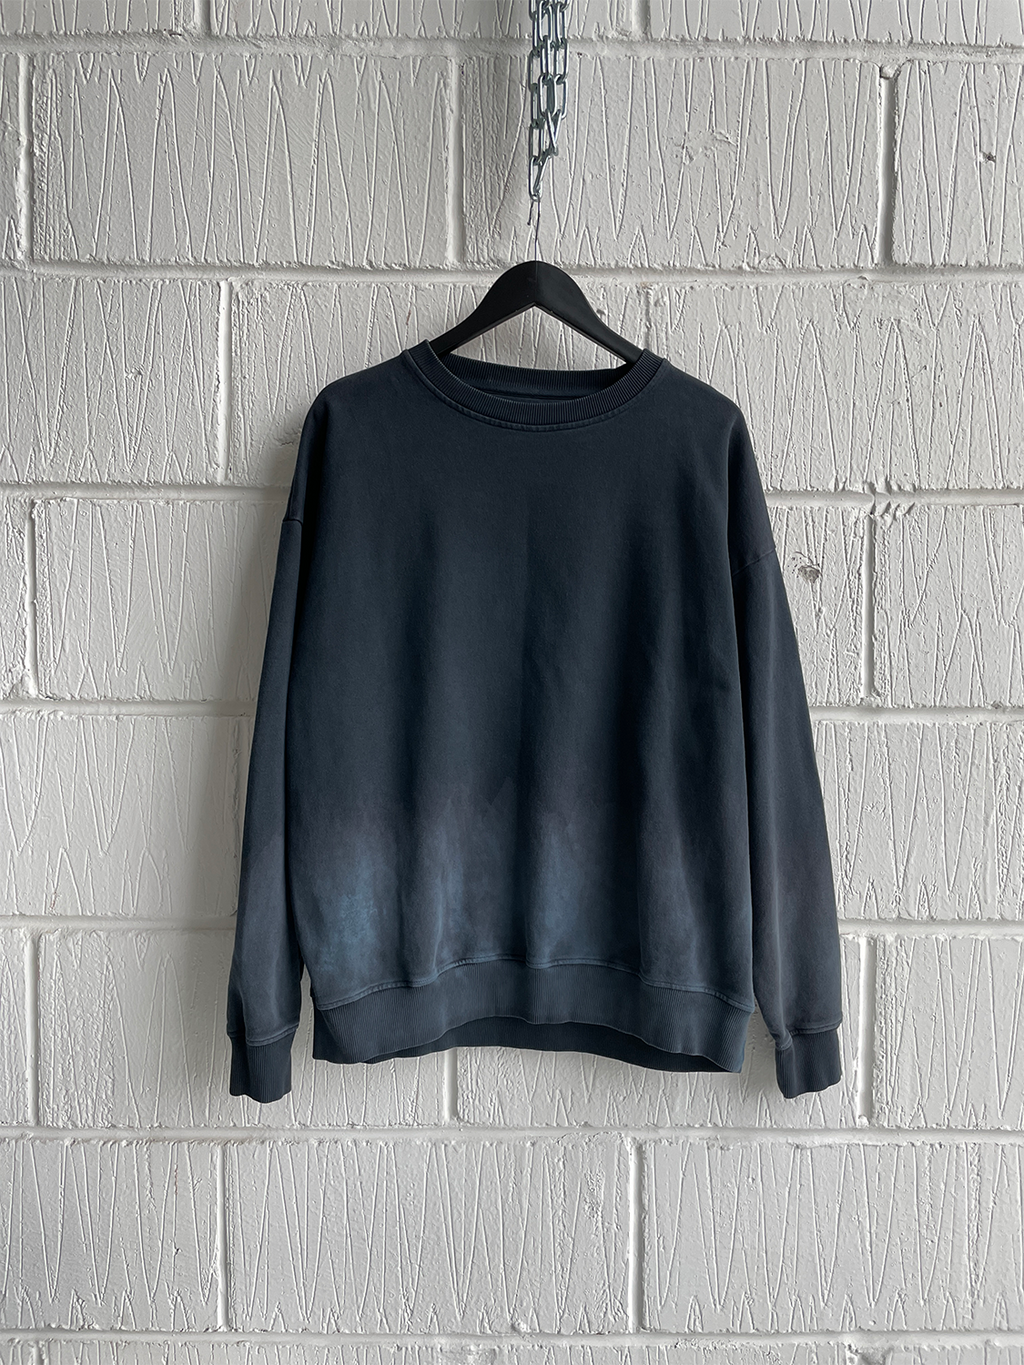 SAMPLE SWEATSHIRT — BLUE DIP-DYE (M)